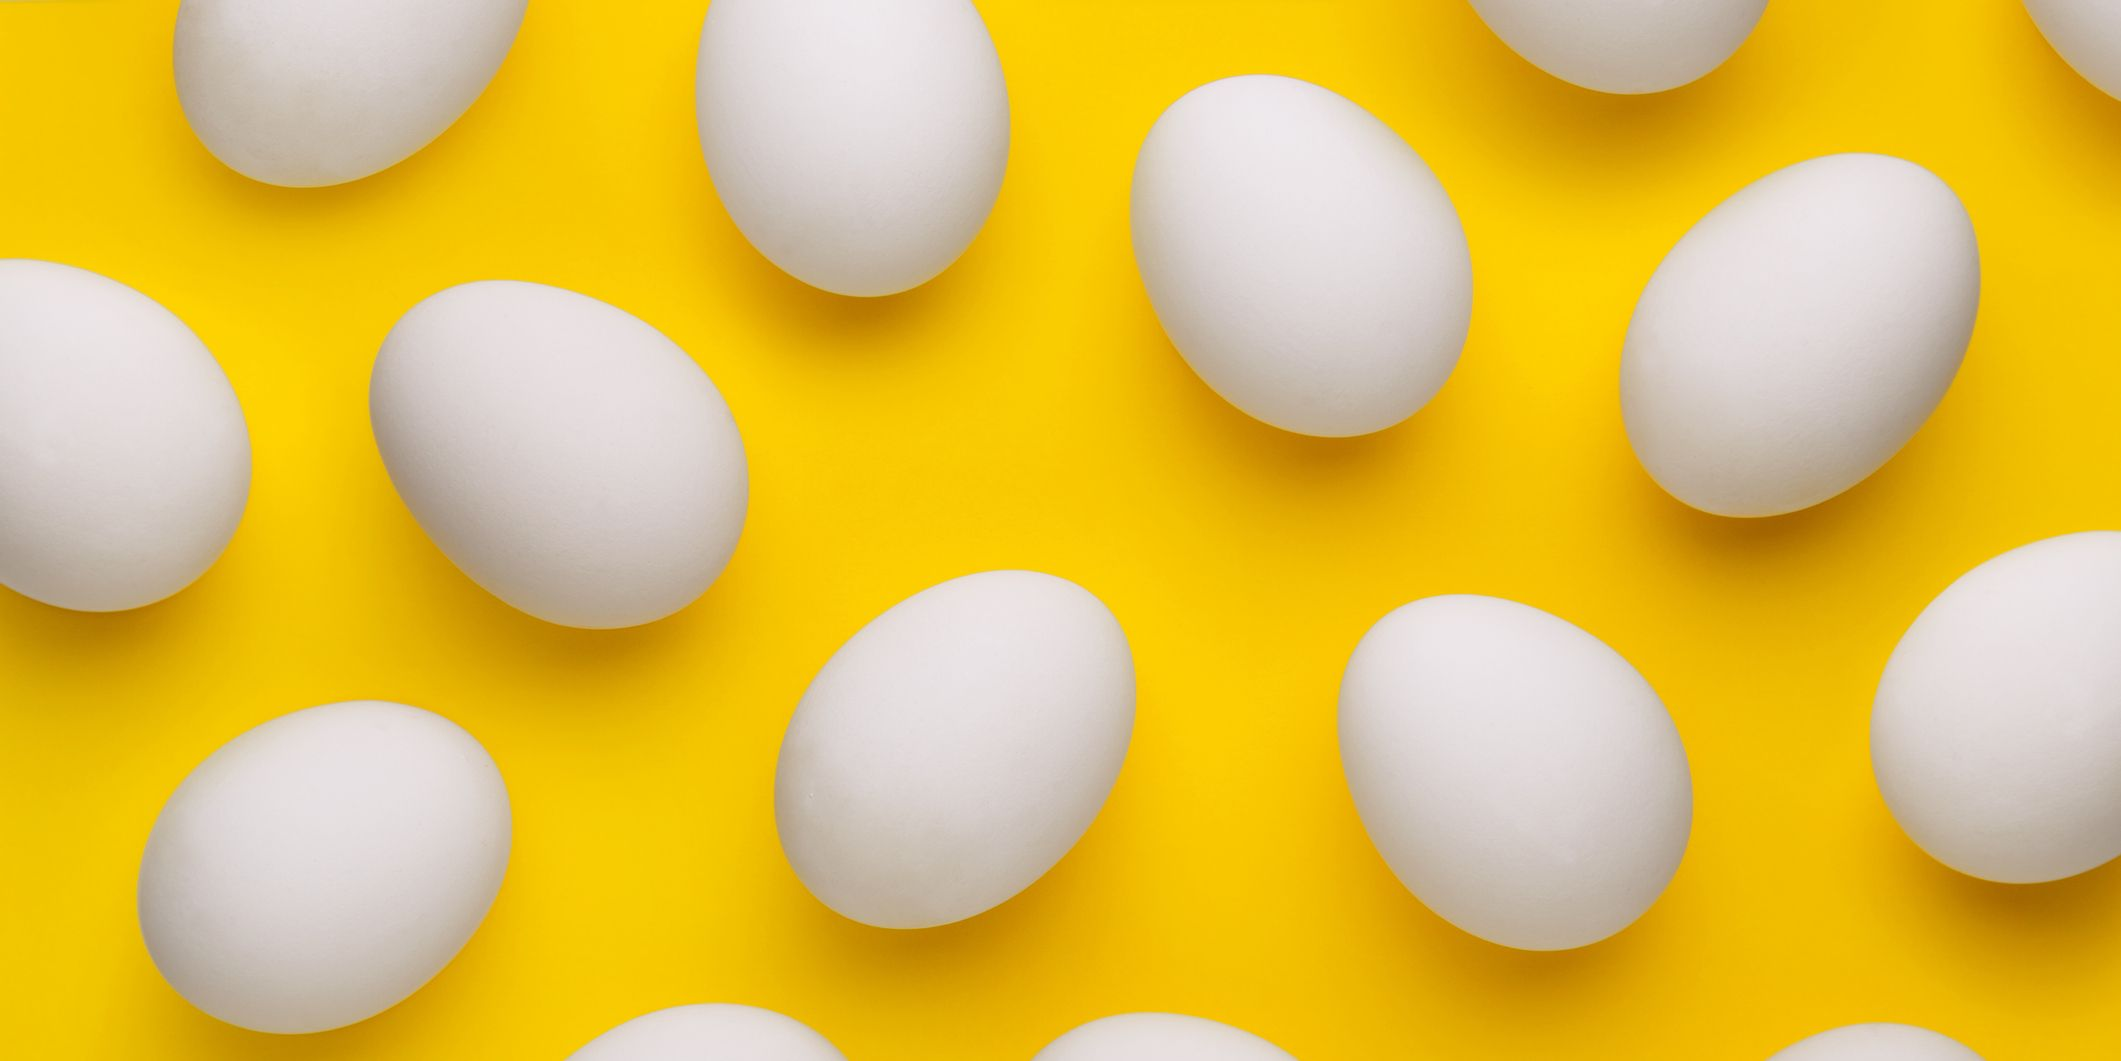 Full Frame Shot Of Eggs On Yellow Background